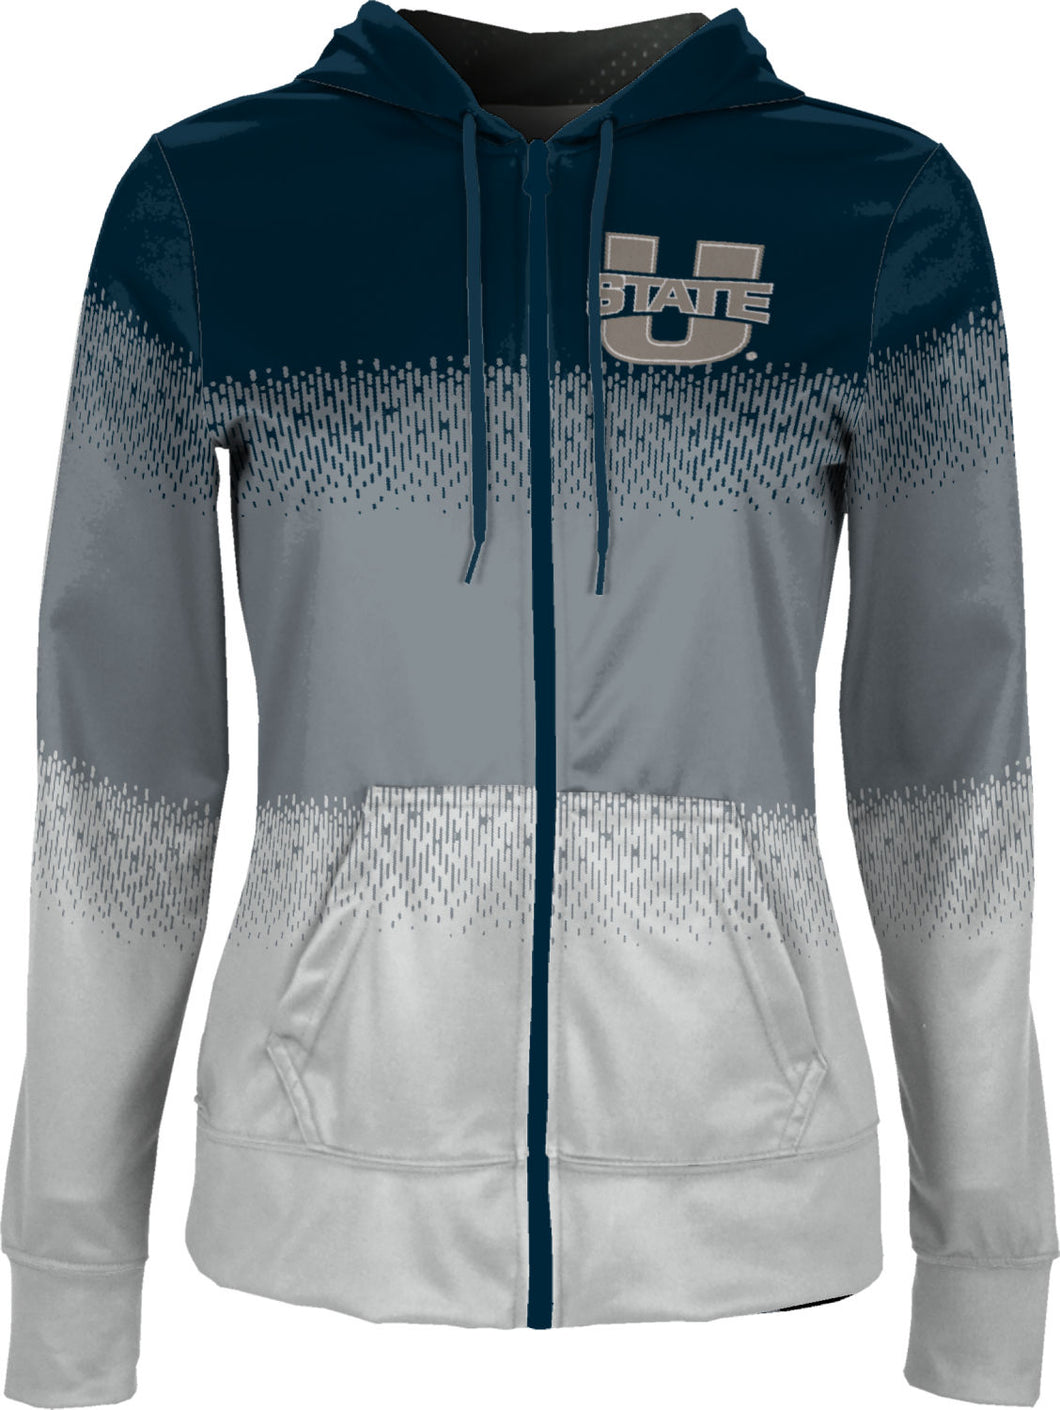 Utah State University: Women's Full Zip Hoodie - Drip